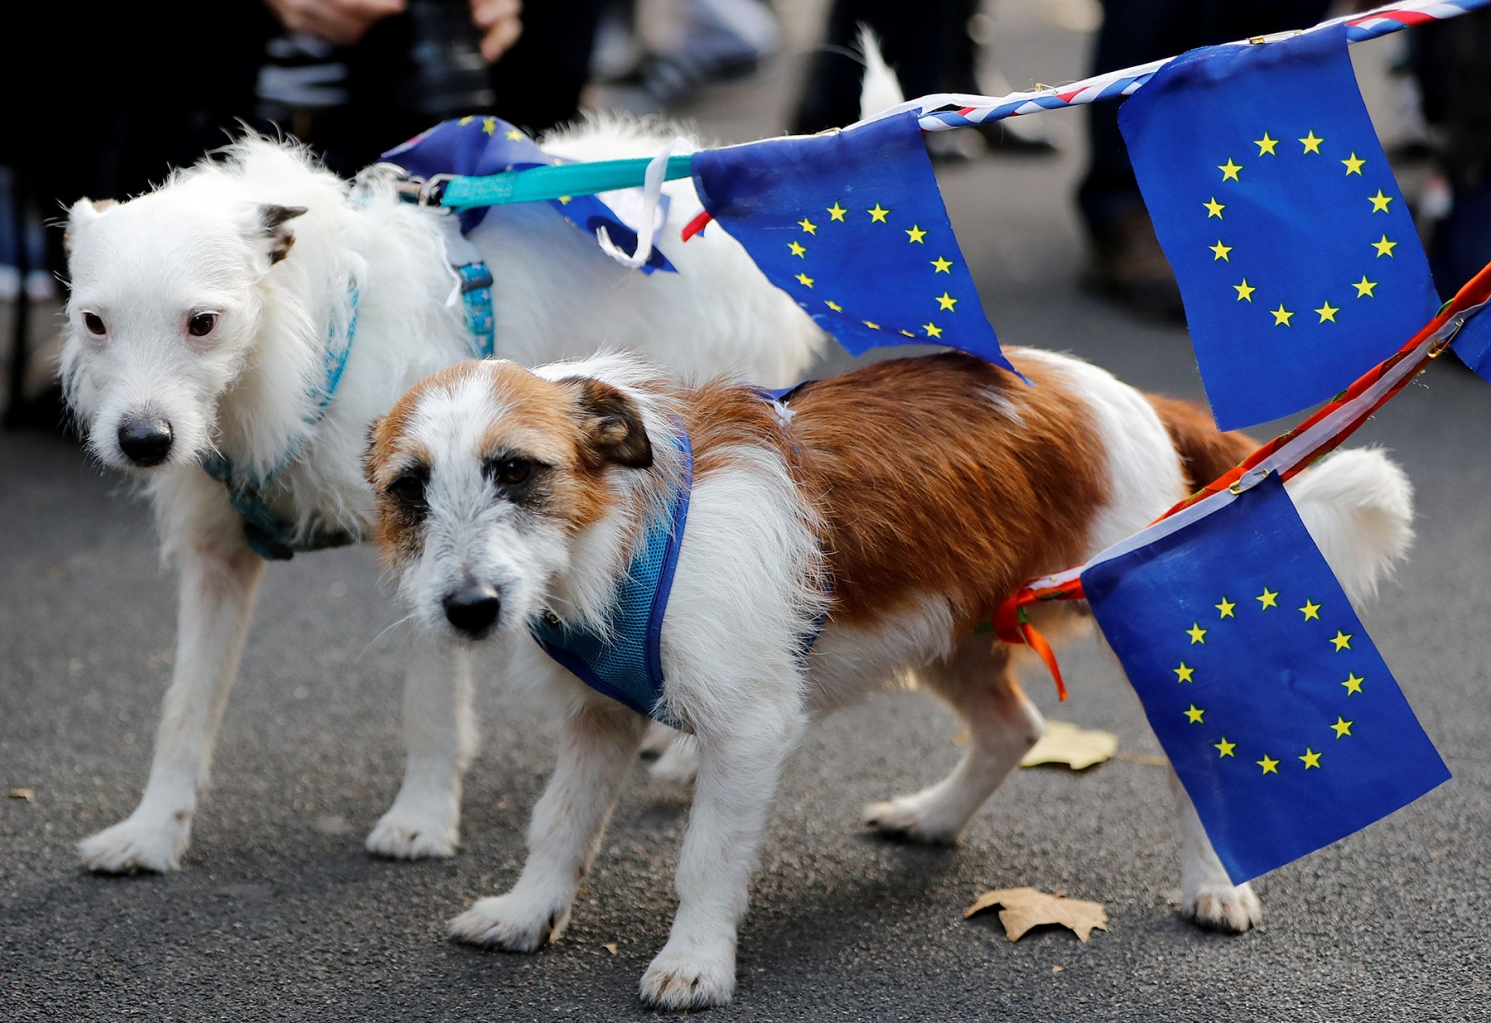 Dogs bearing European Union flags take part in an anti-Brexit protest protest outside the entrance to Downing Street in London on Nov. 14. TOLGA AKMEN/AFP/Getty Images